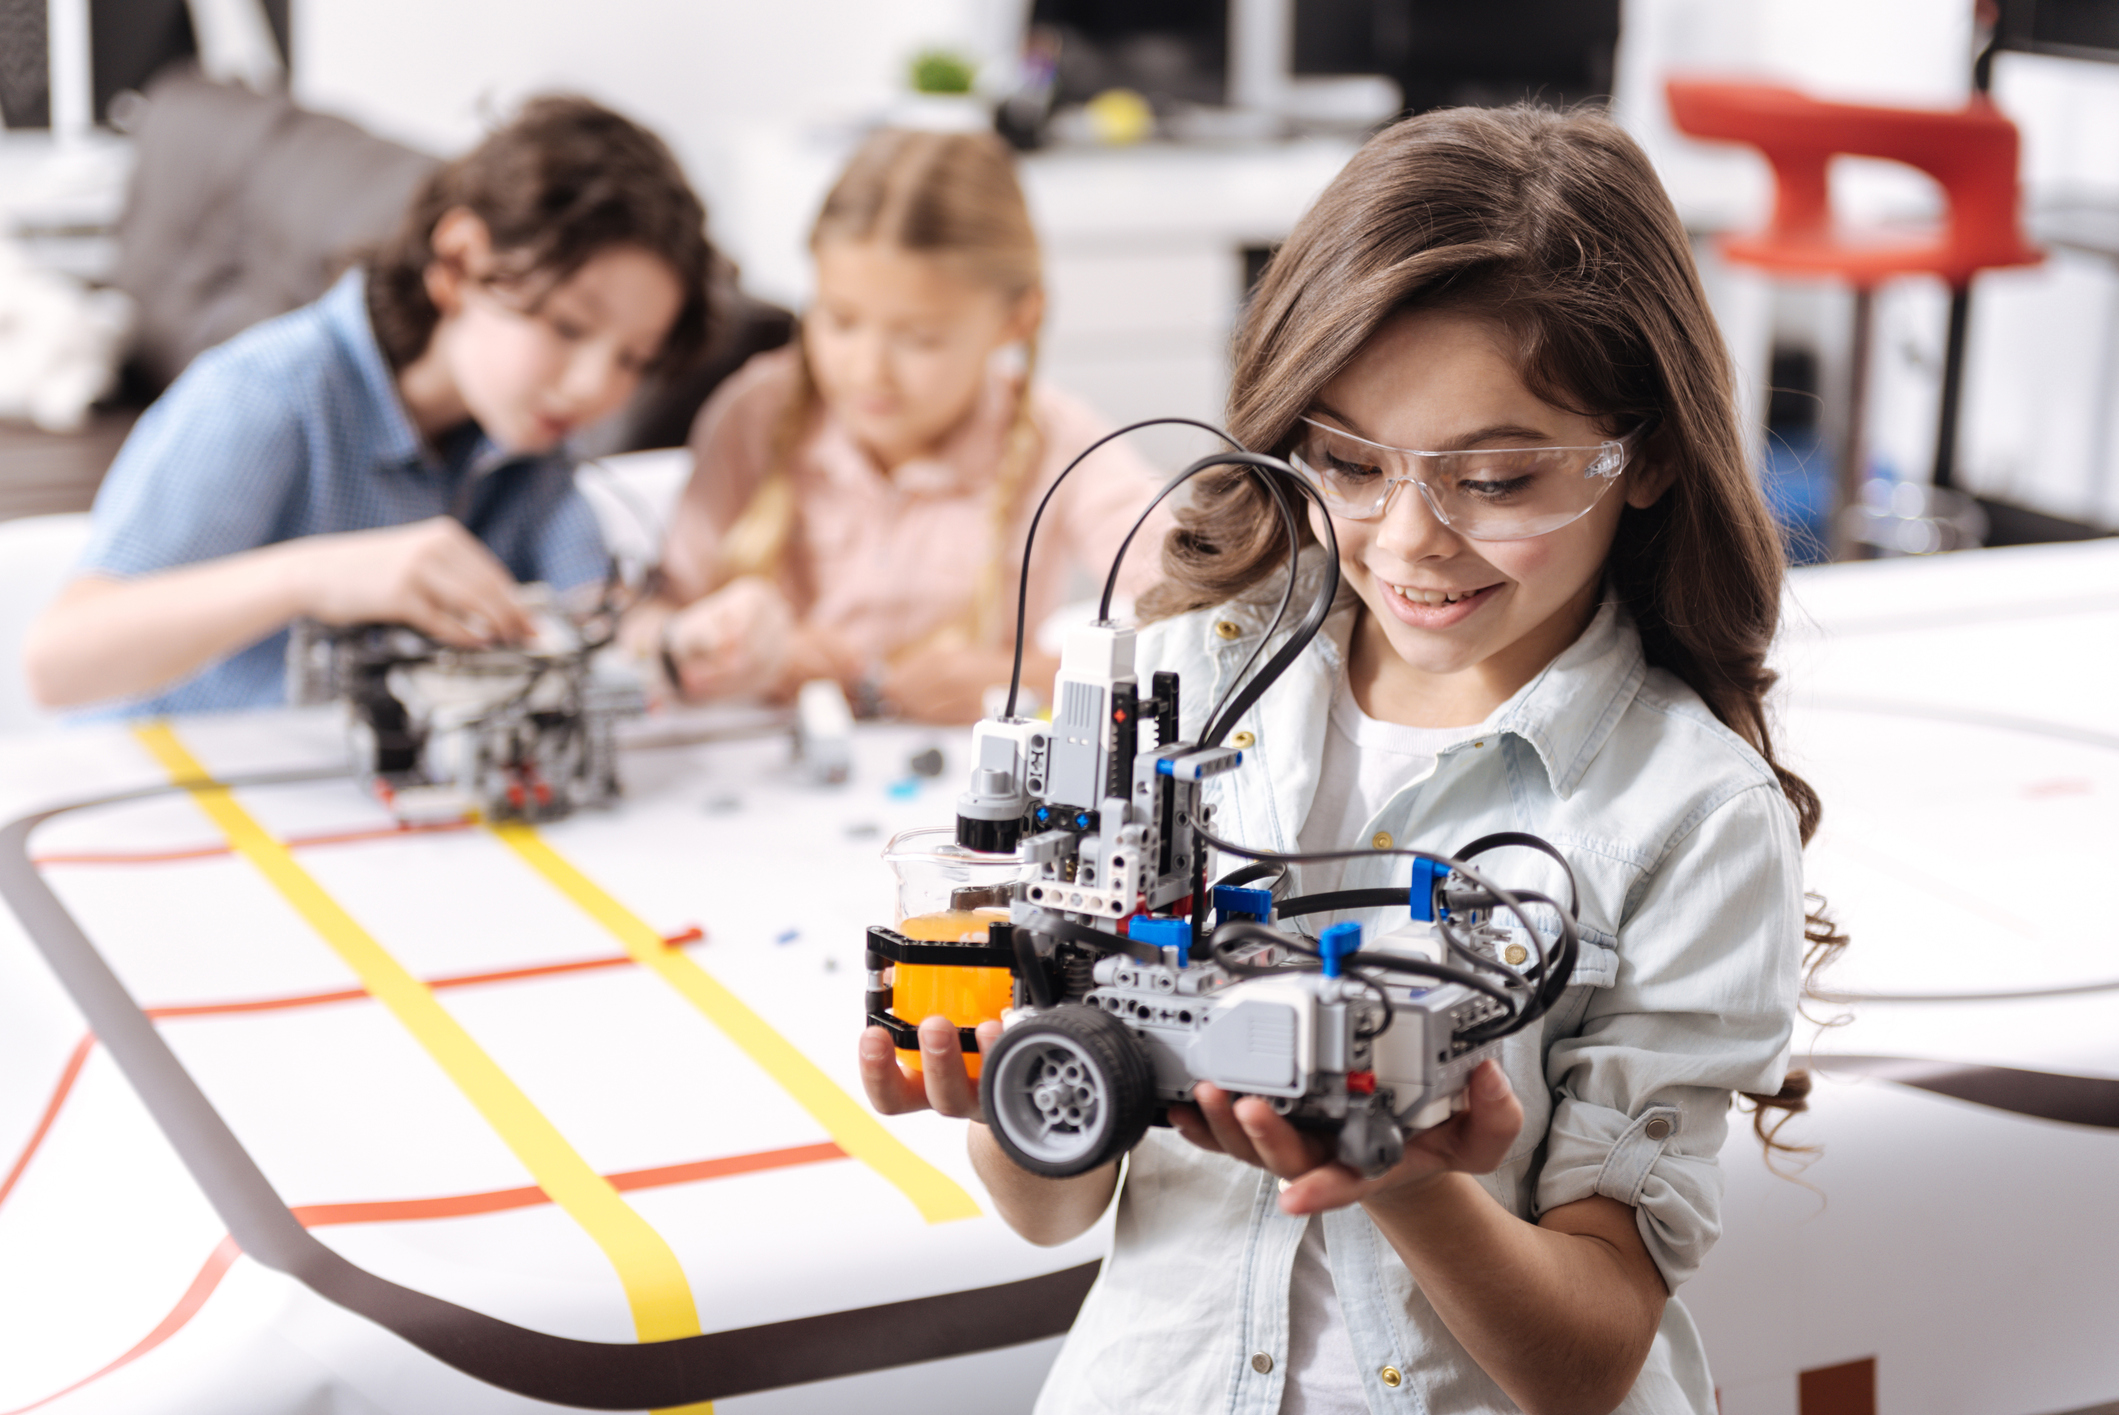 Technology Will Change Society, And We Need to Change Our Schools